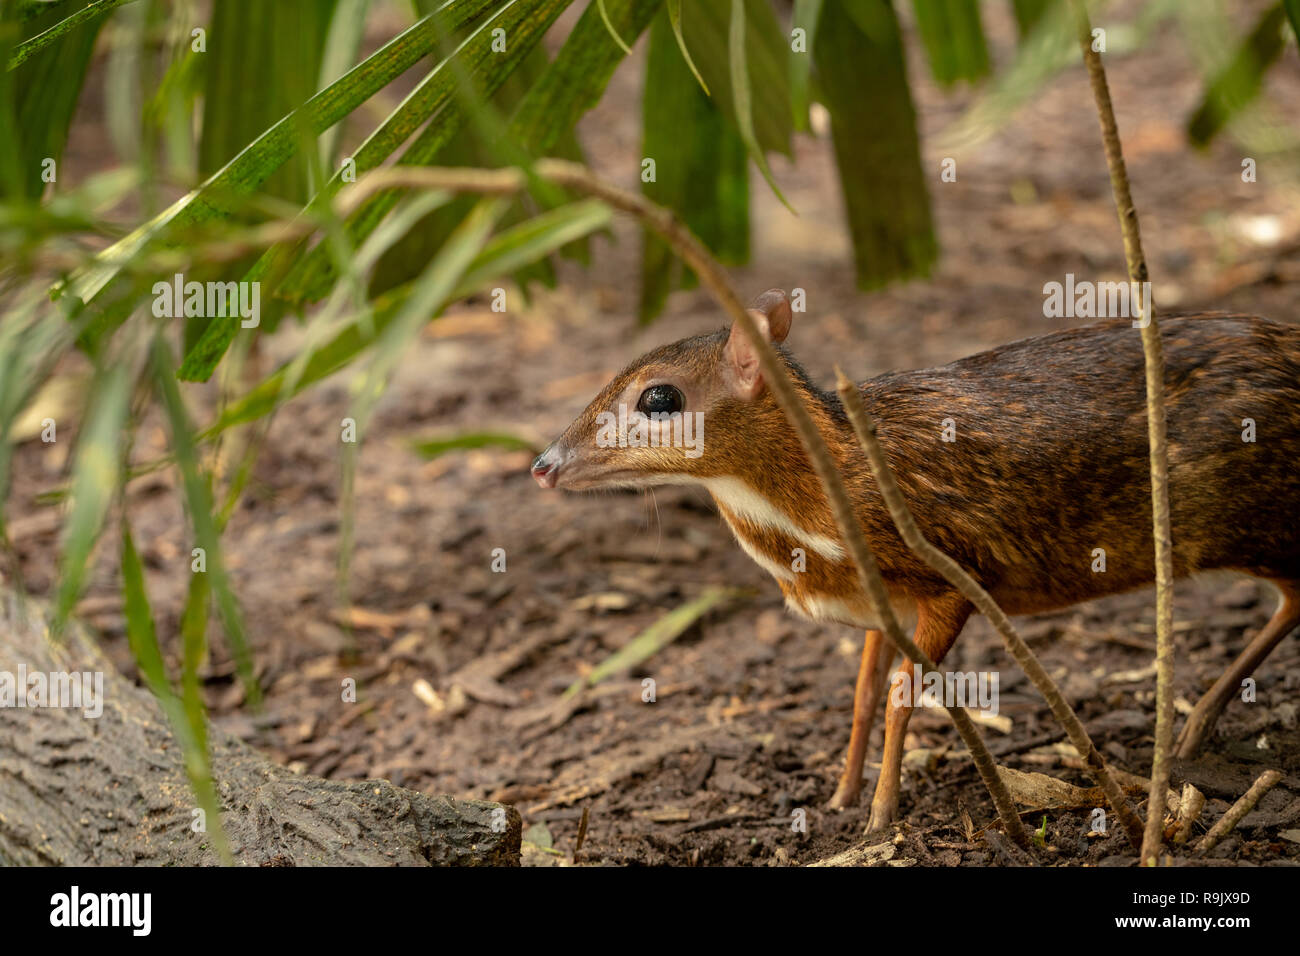 Lesser mousedeer, or mouse-deer, Tragulus kanchil standing in bushes Stock Photo